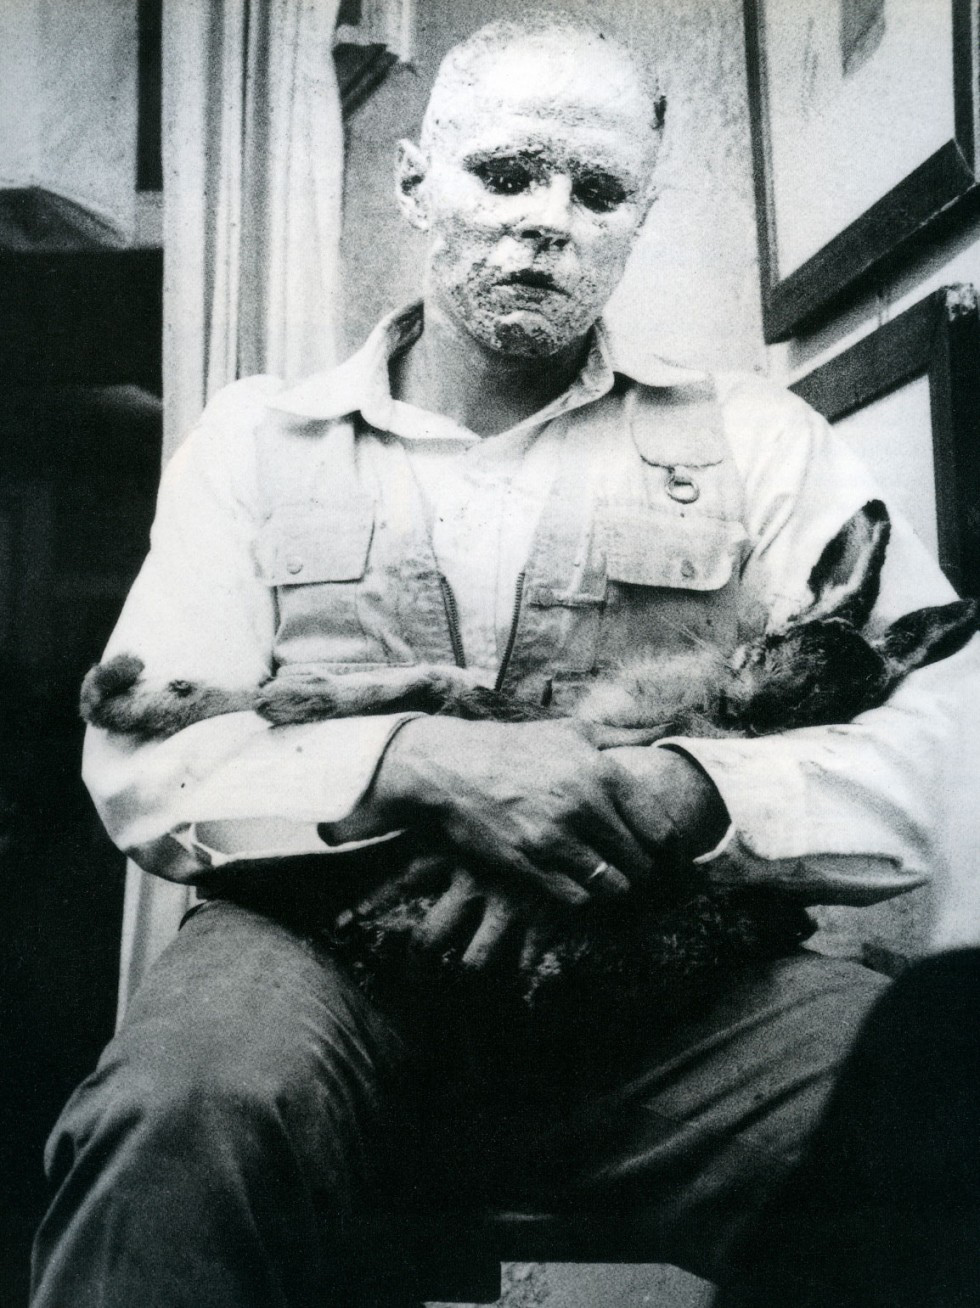 Artist Joseph Beuys during his performance with a dead hare at the Galerie Schmela in Düsseldorf. Wie man dem toten Hasen die Bilder erklärt [or How to Explain Pictures to a Dead Hare], 1965.